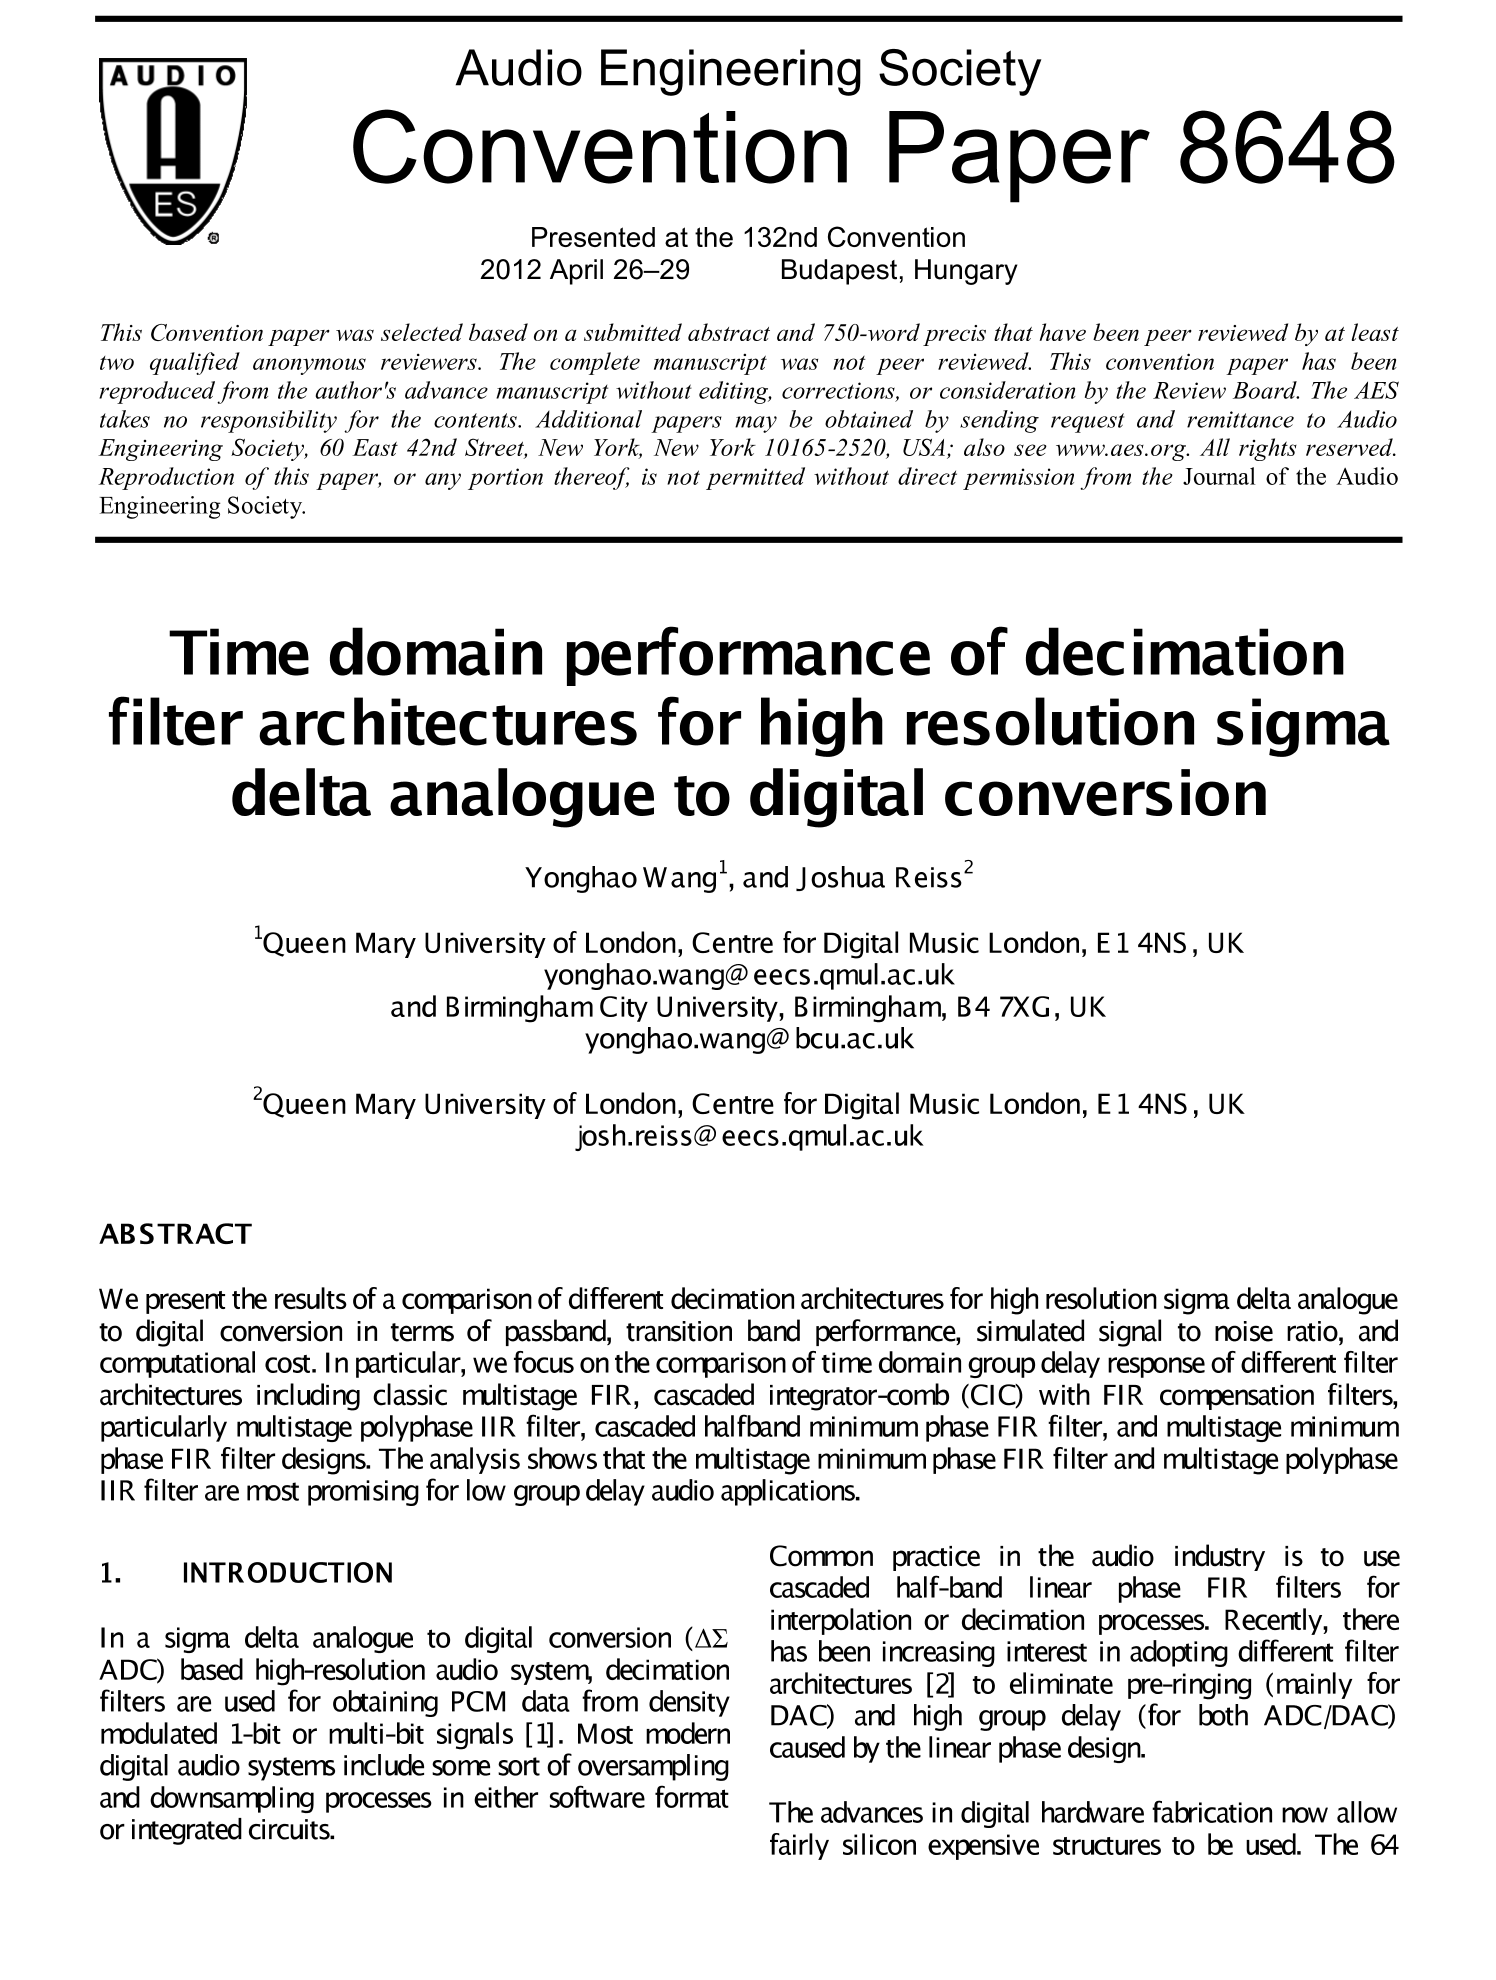 Aes E Library Time Domain Performance Of Decimation Filter Normally Analoguetodigital Converter Adc Needs Interfacing Architectures For High Resolution Sigma Delta Analogue To Digital Conversion